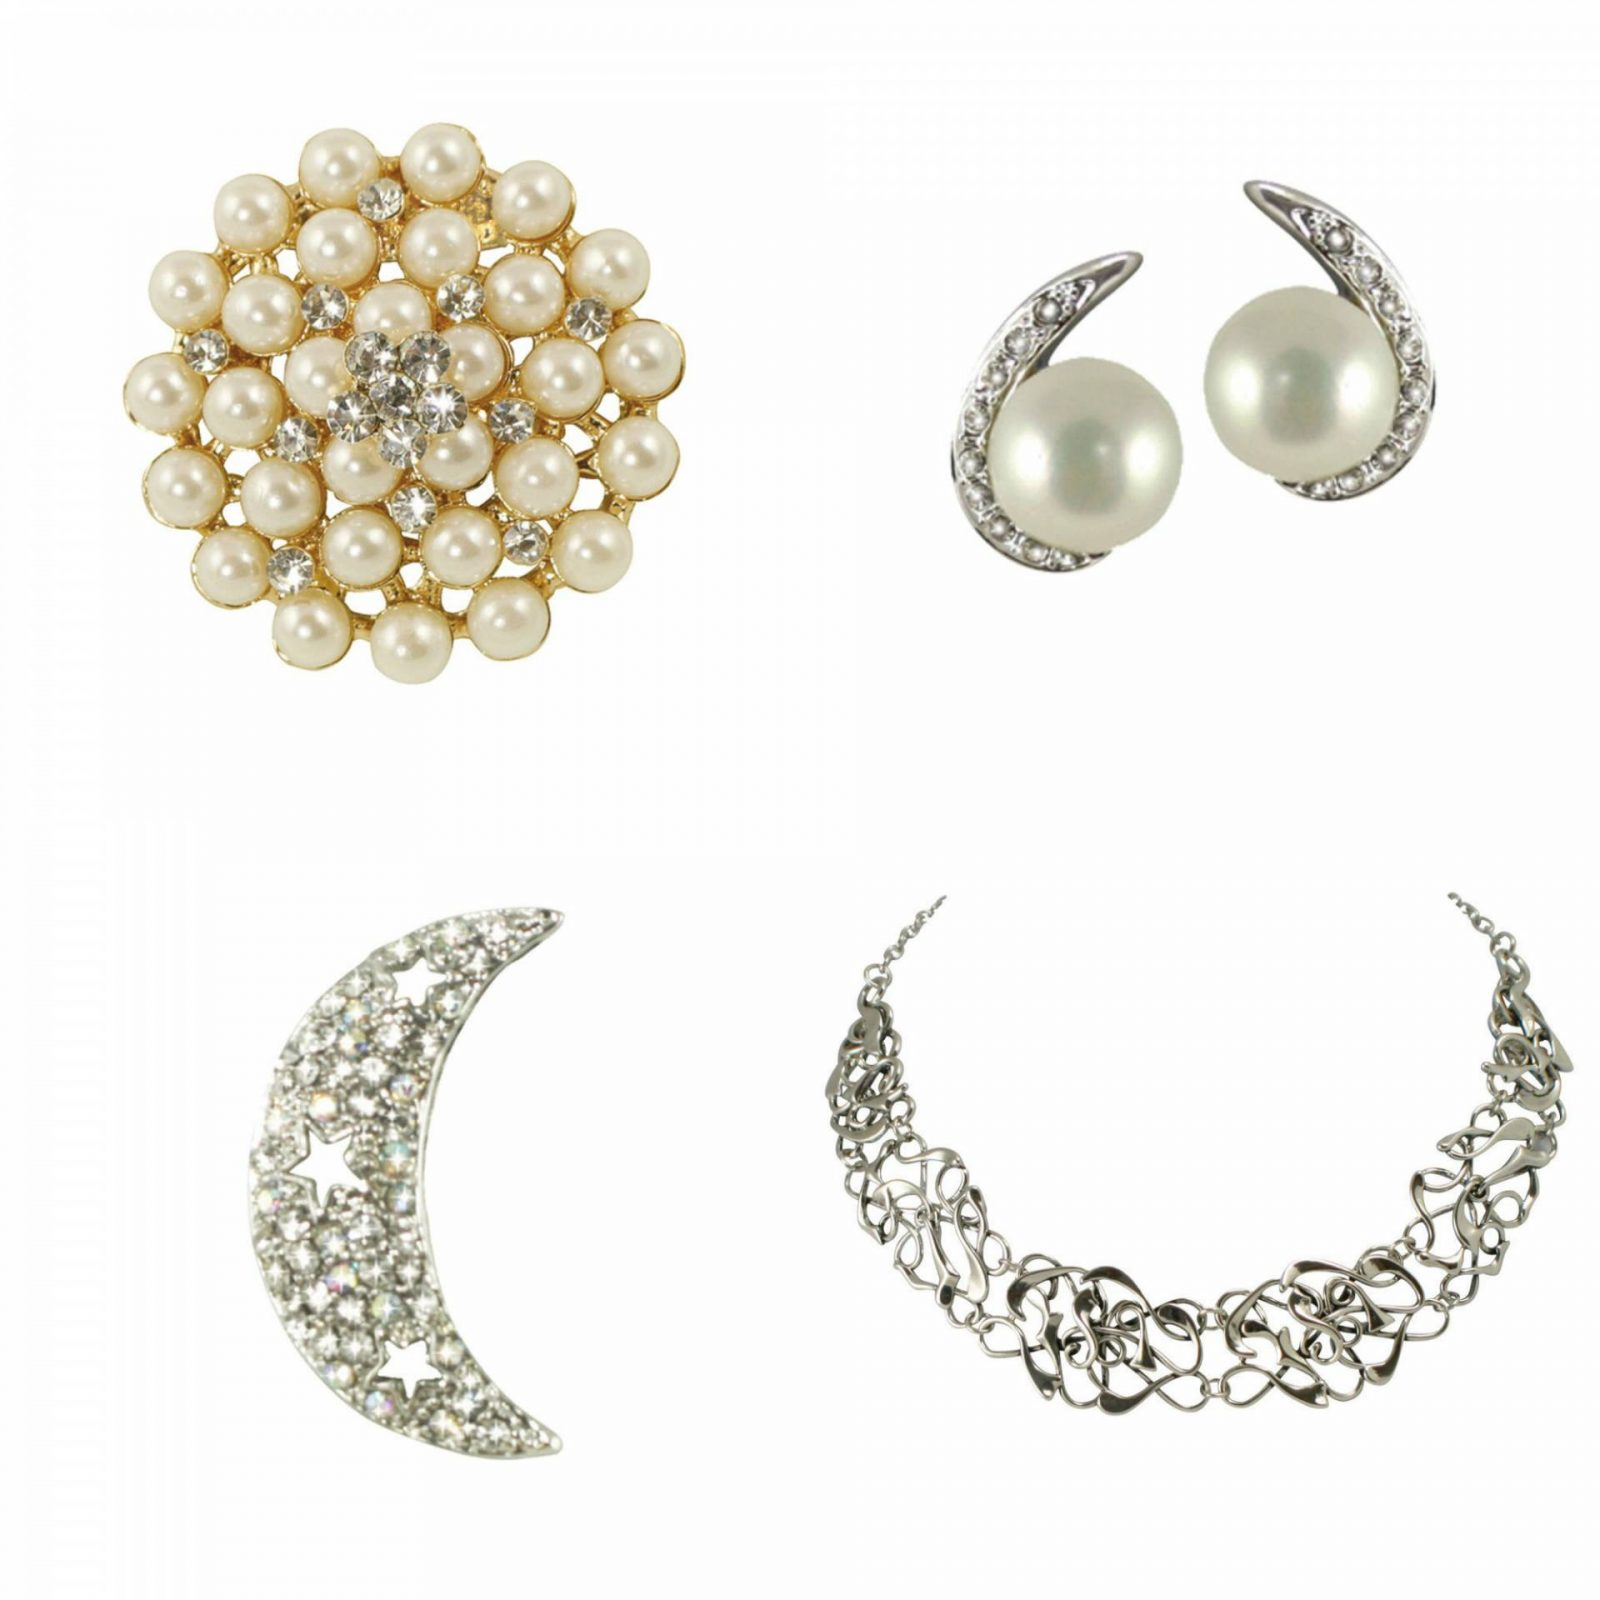 Eternal Collection Christmas Jewellery Gifts under £25